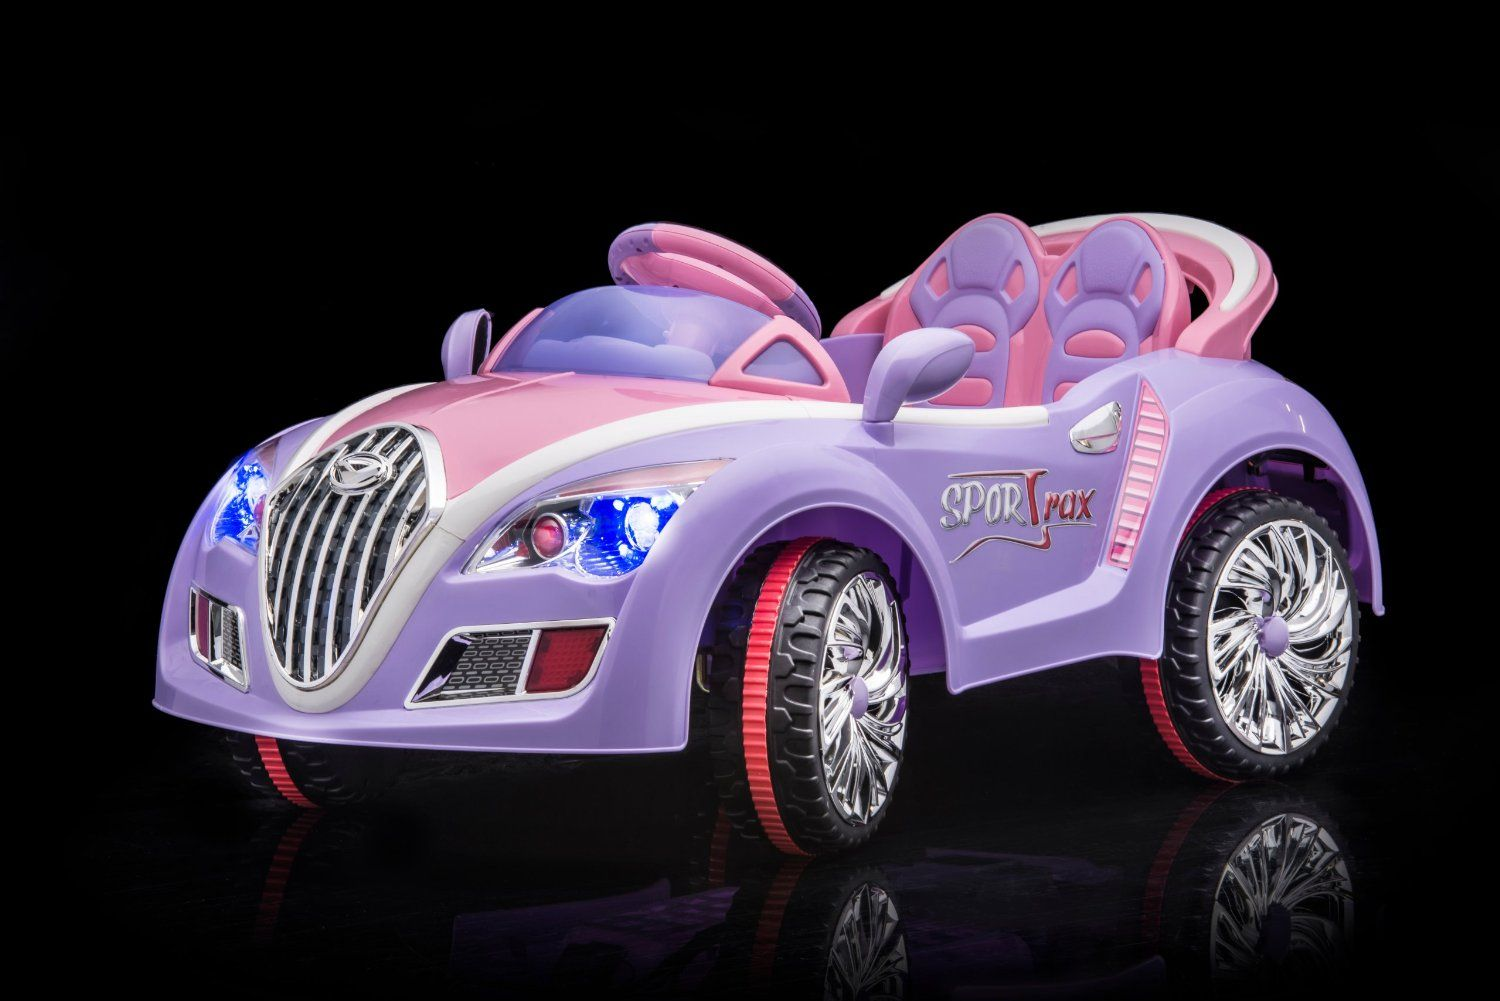 SPORTrax Bugatti Style Kid's Ride On Car